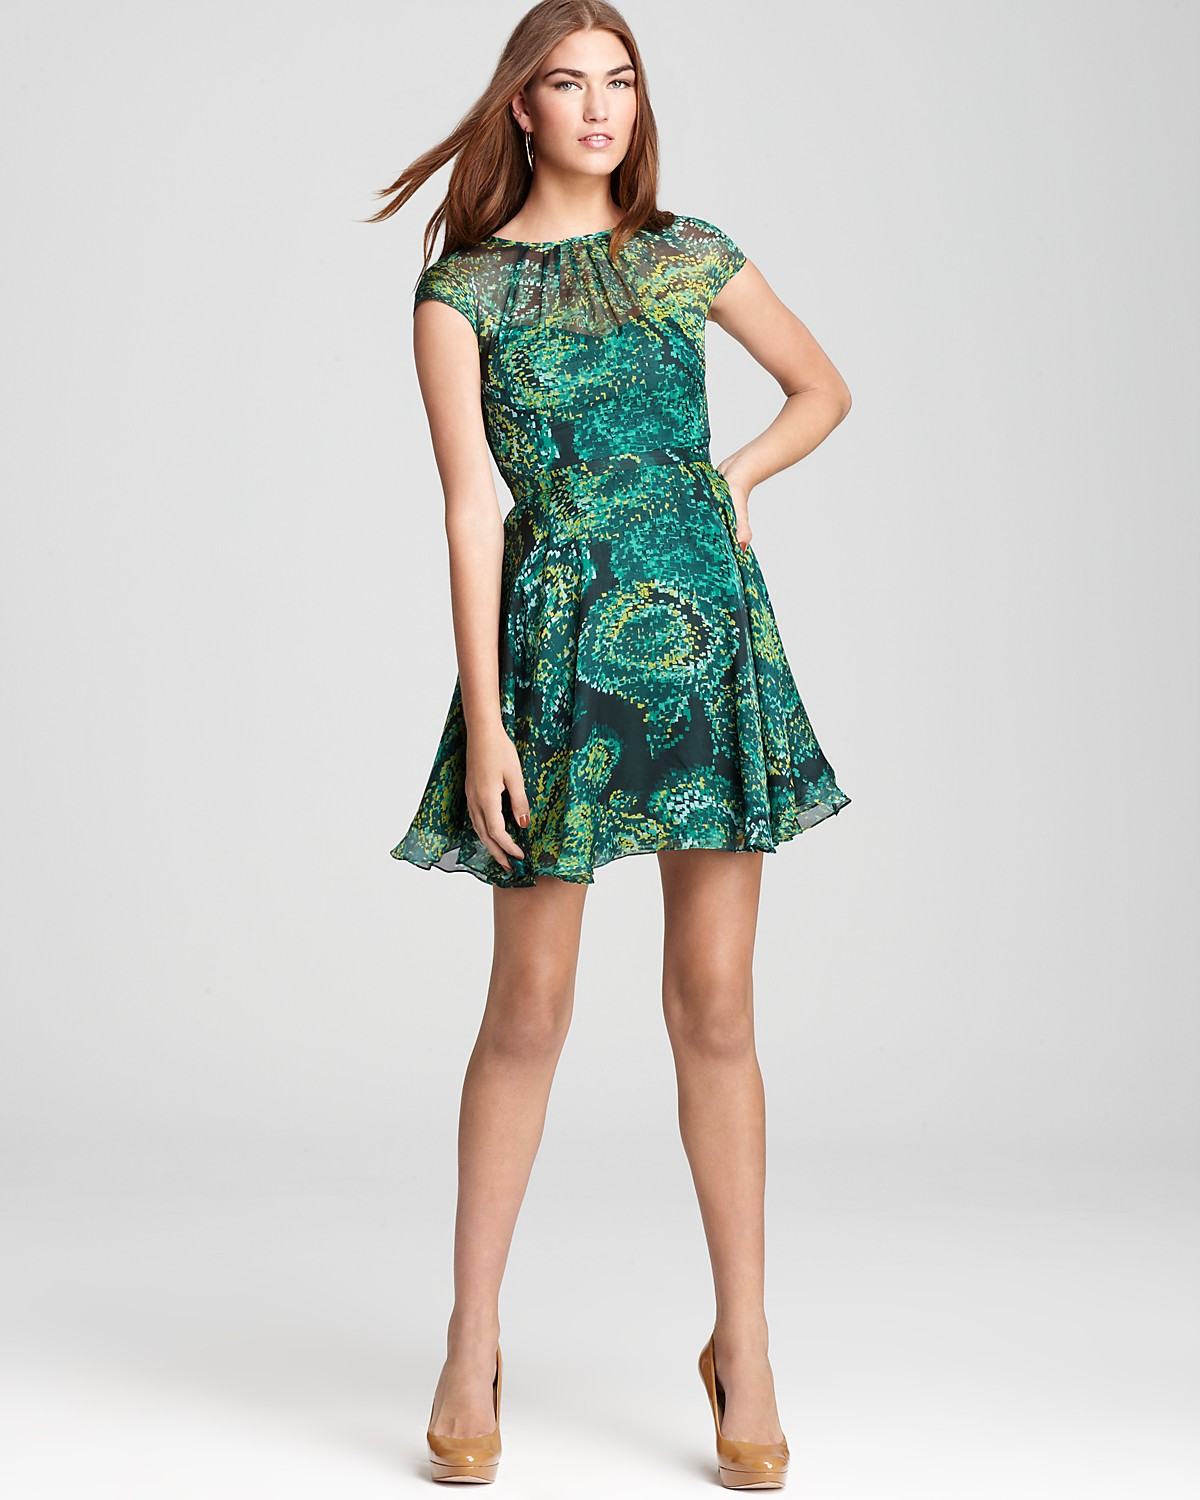 Where To Buy Shoshanna Dresses Shoshanna Printed Dress